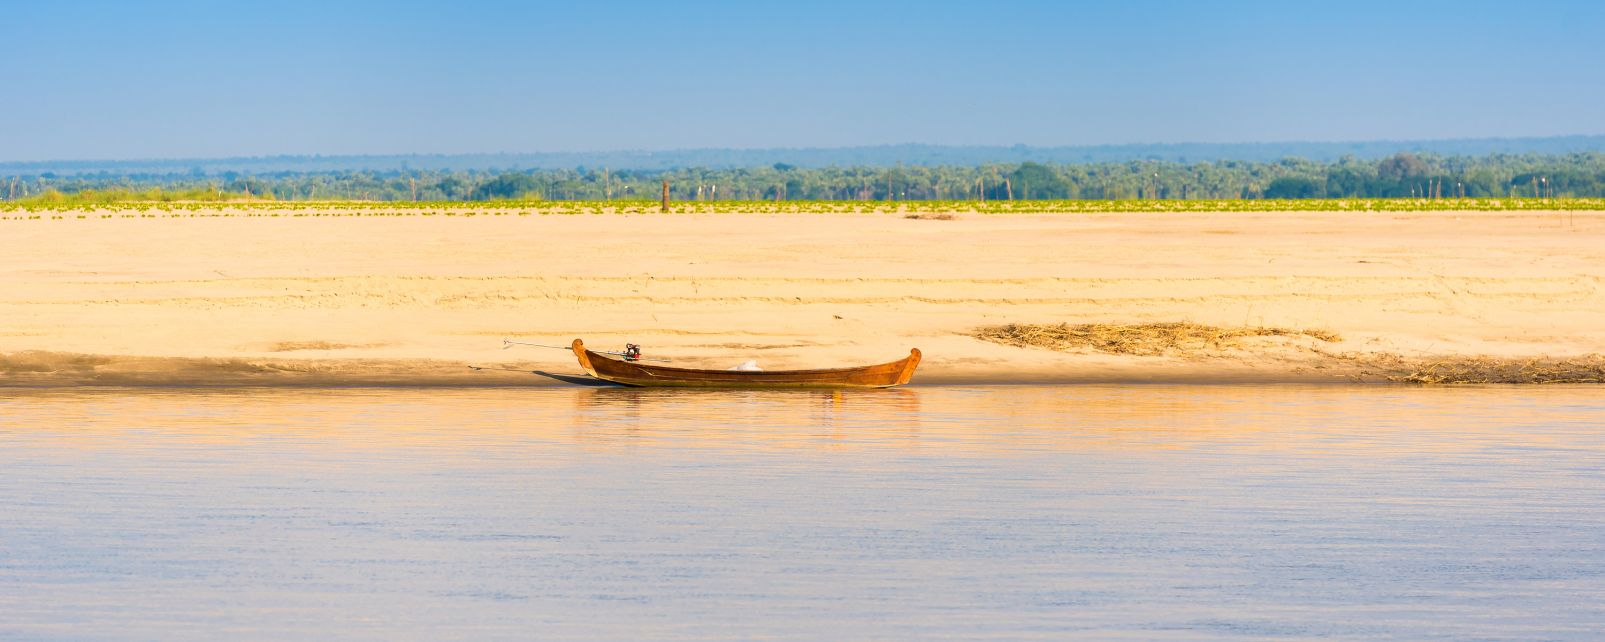 , The Irrawaddy, Landscapes, Myanmar